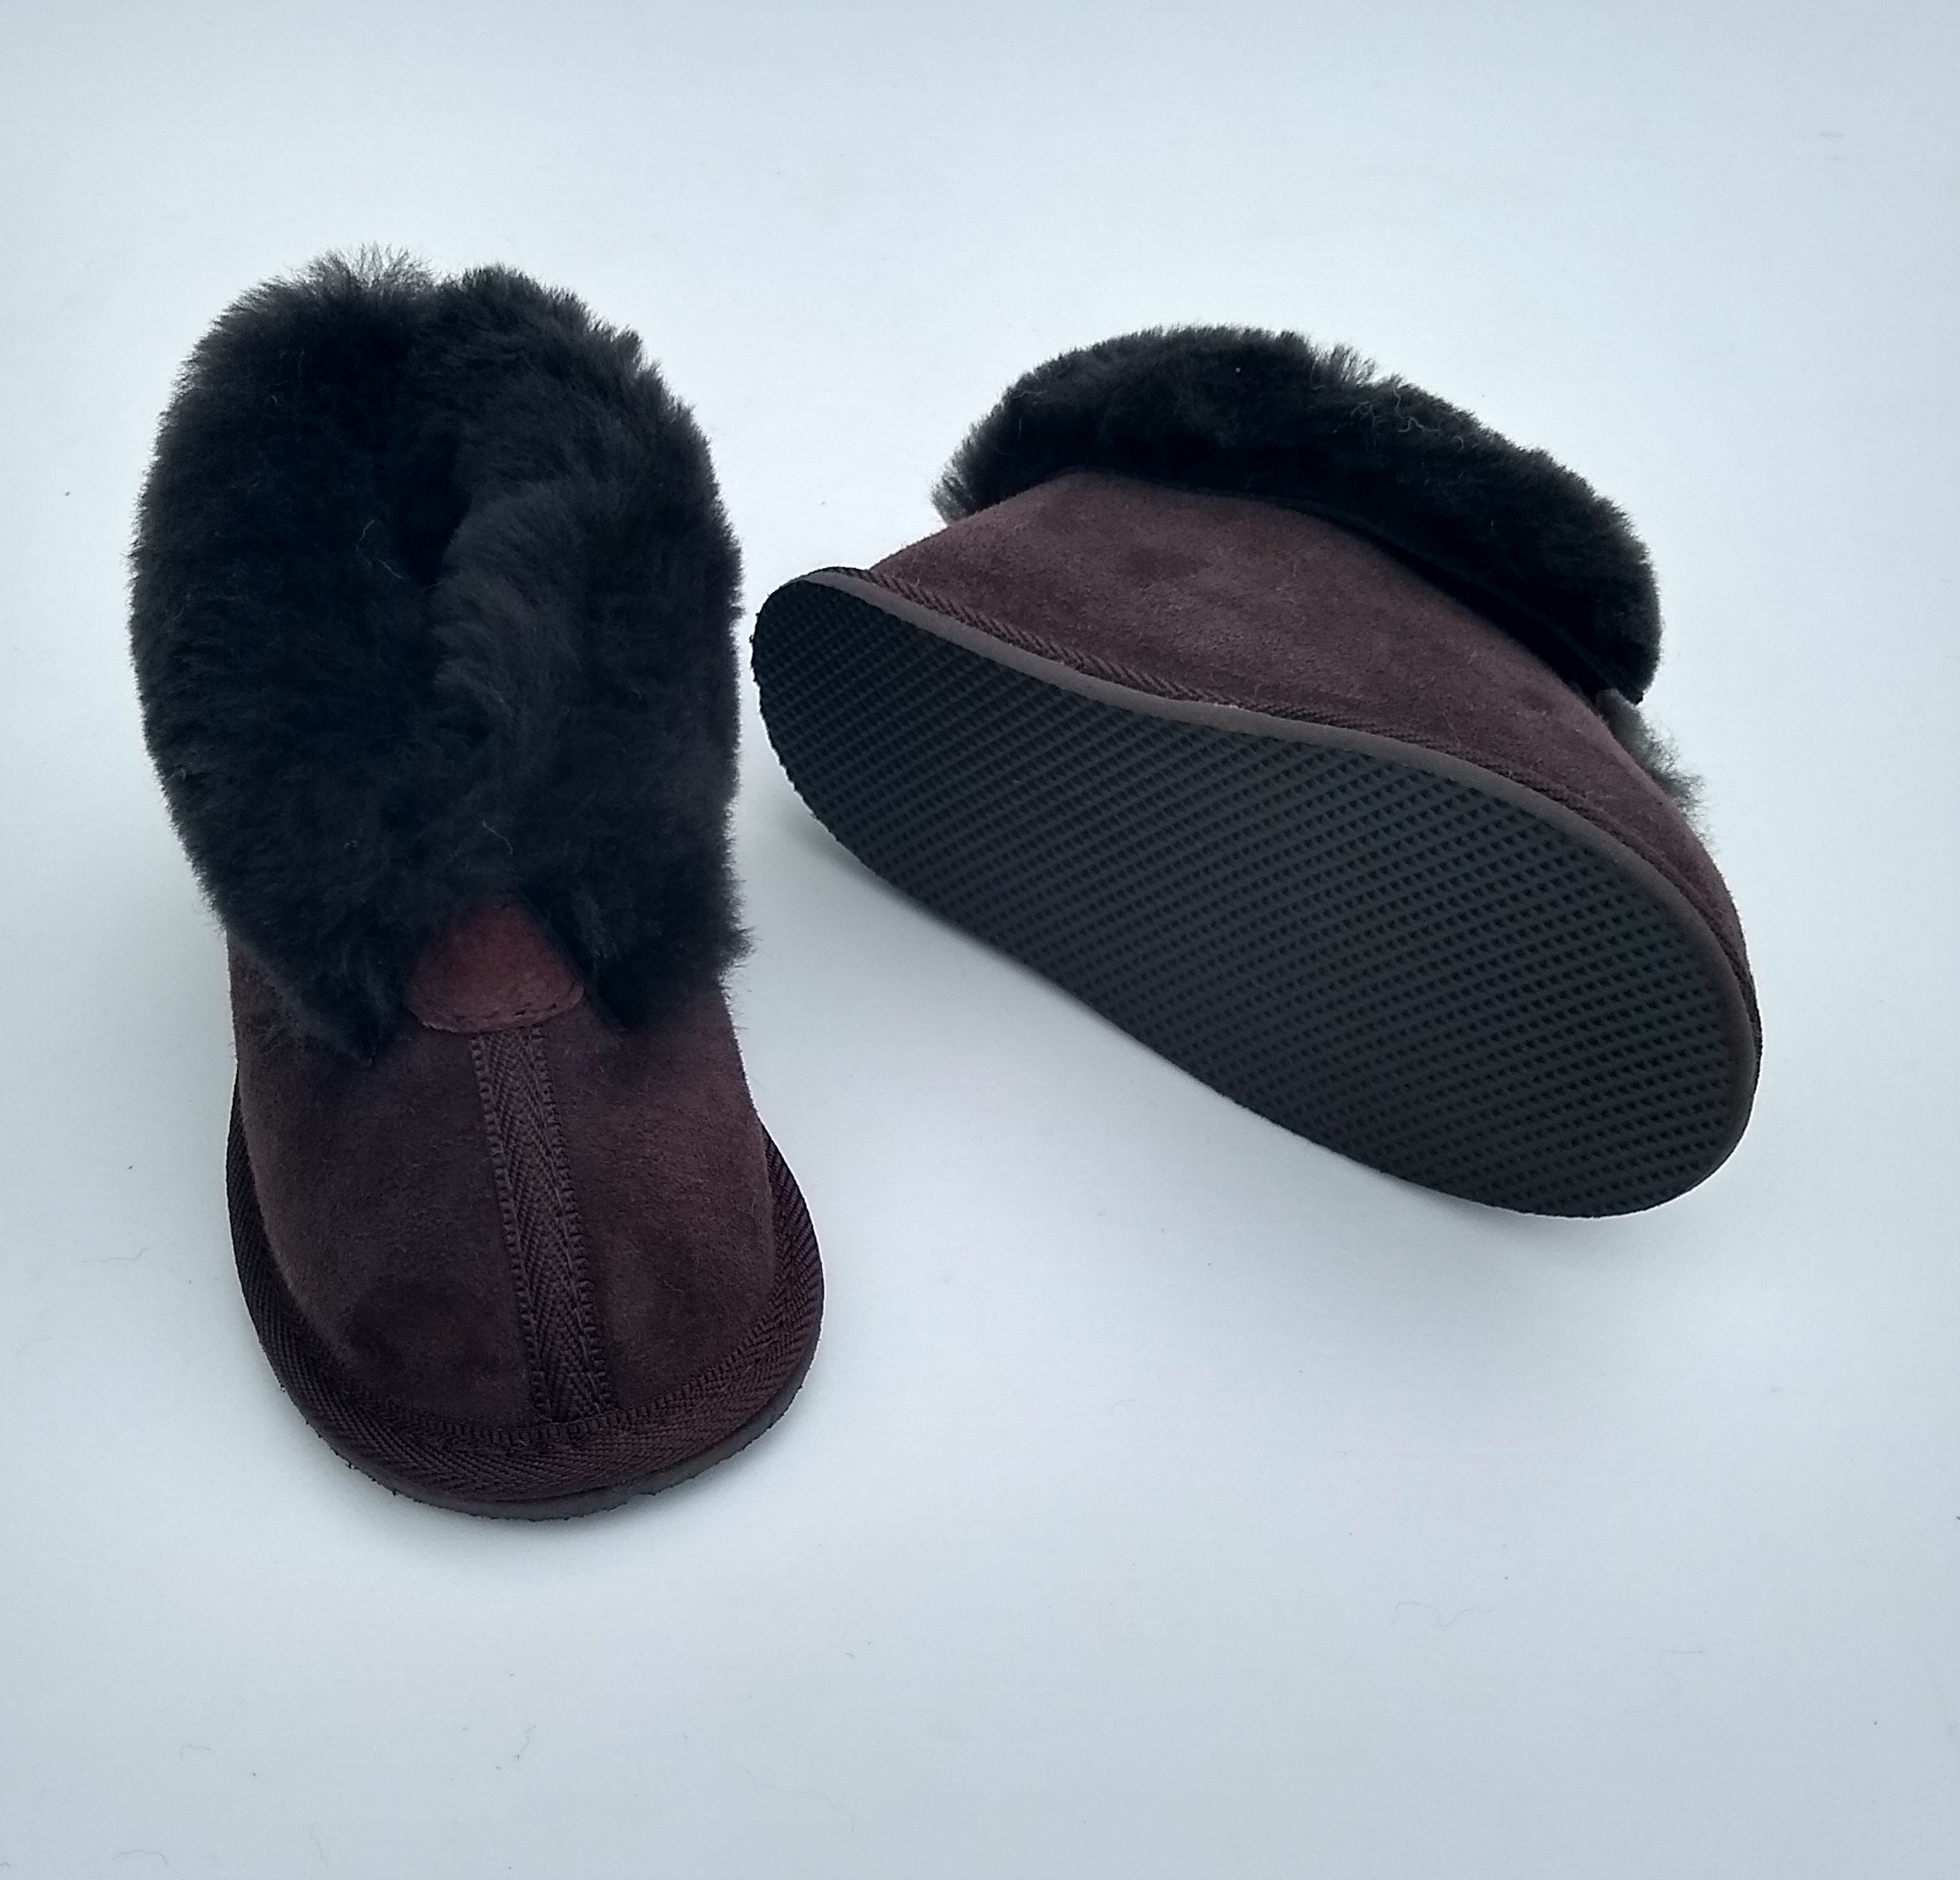 MORGAN CHILD'S SLIPPER - Woolshed Gallery